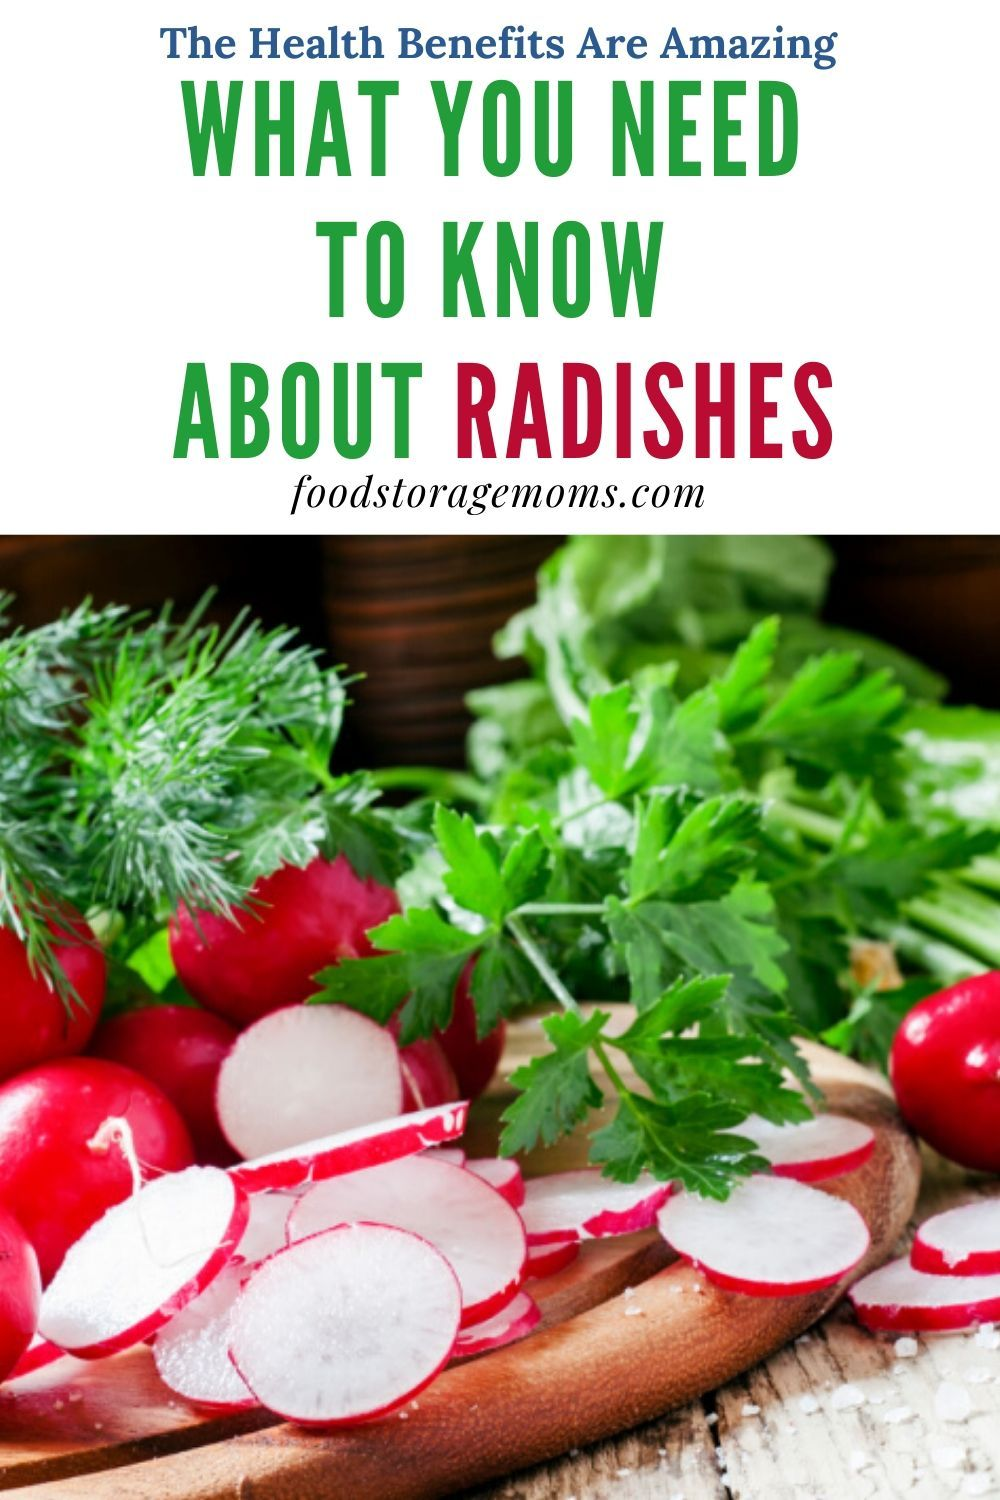 Radishes are an edible root vegetable that is part of the